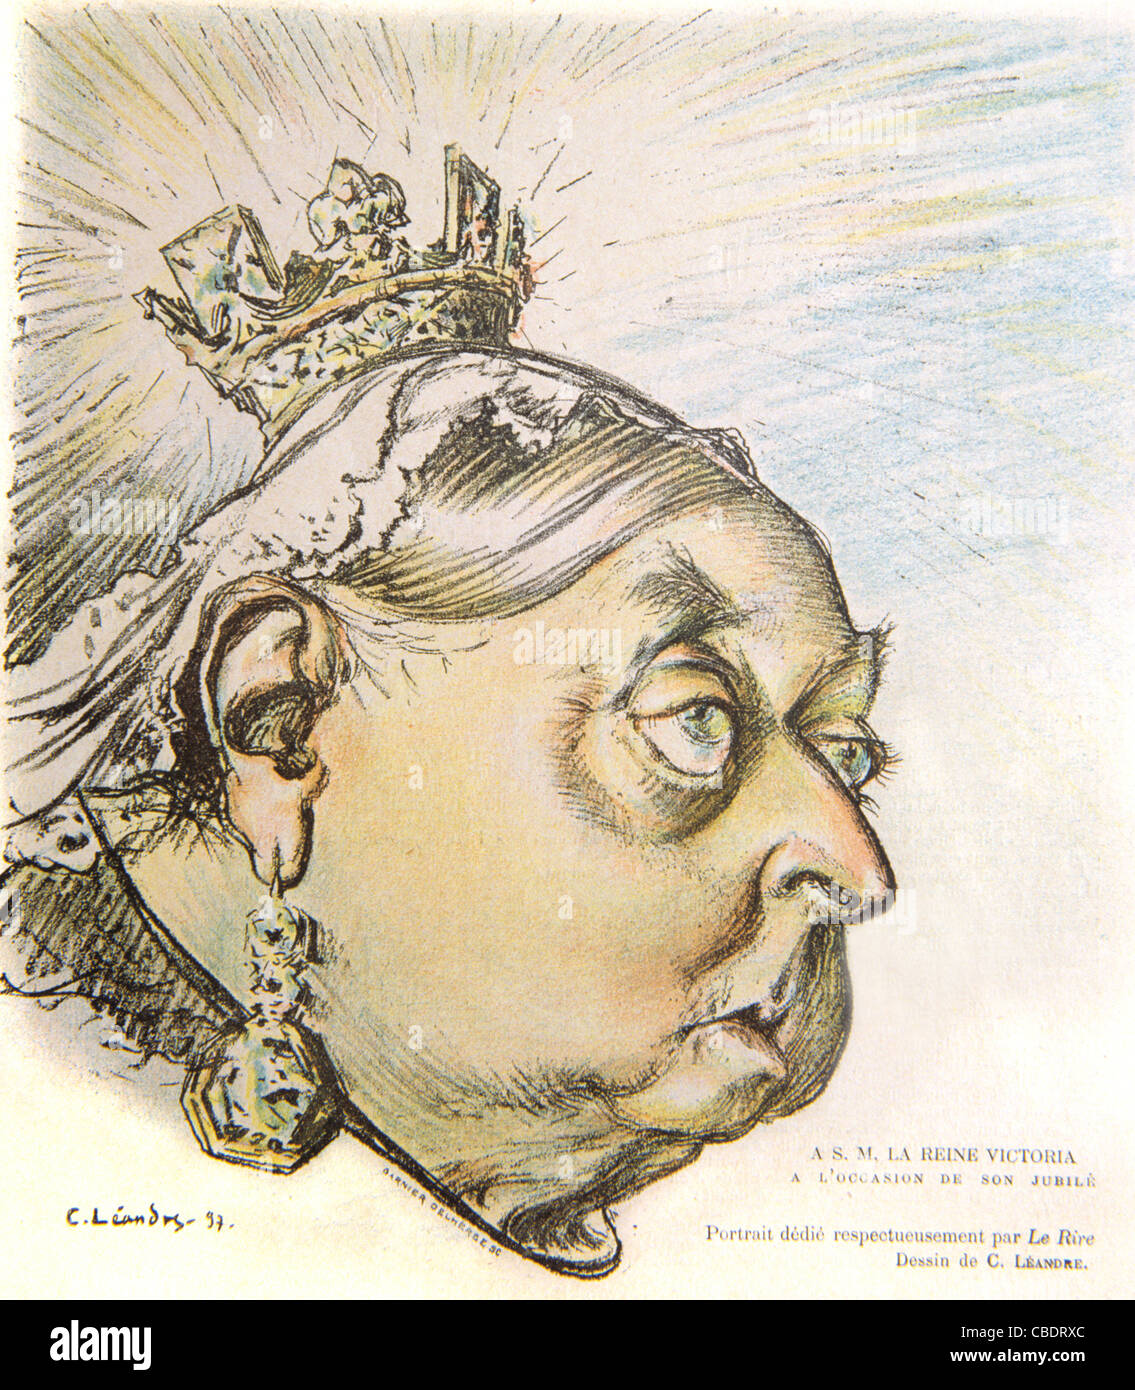 Satirical Cartoon of Queen Victoria on Sixtieth Jubilee of her Reign. Cover of French Satirical Magazine, 'Le - Stock Image